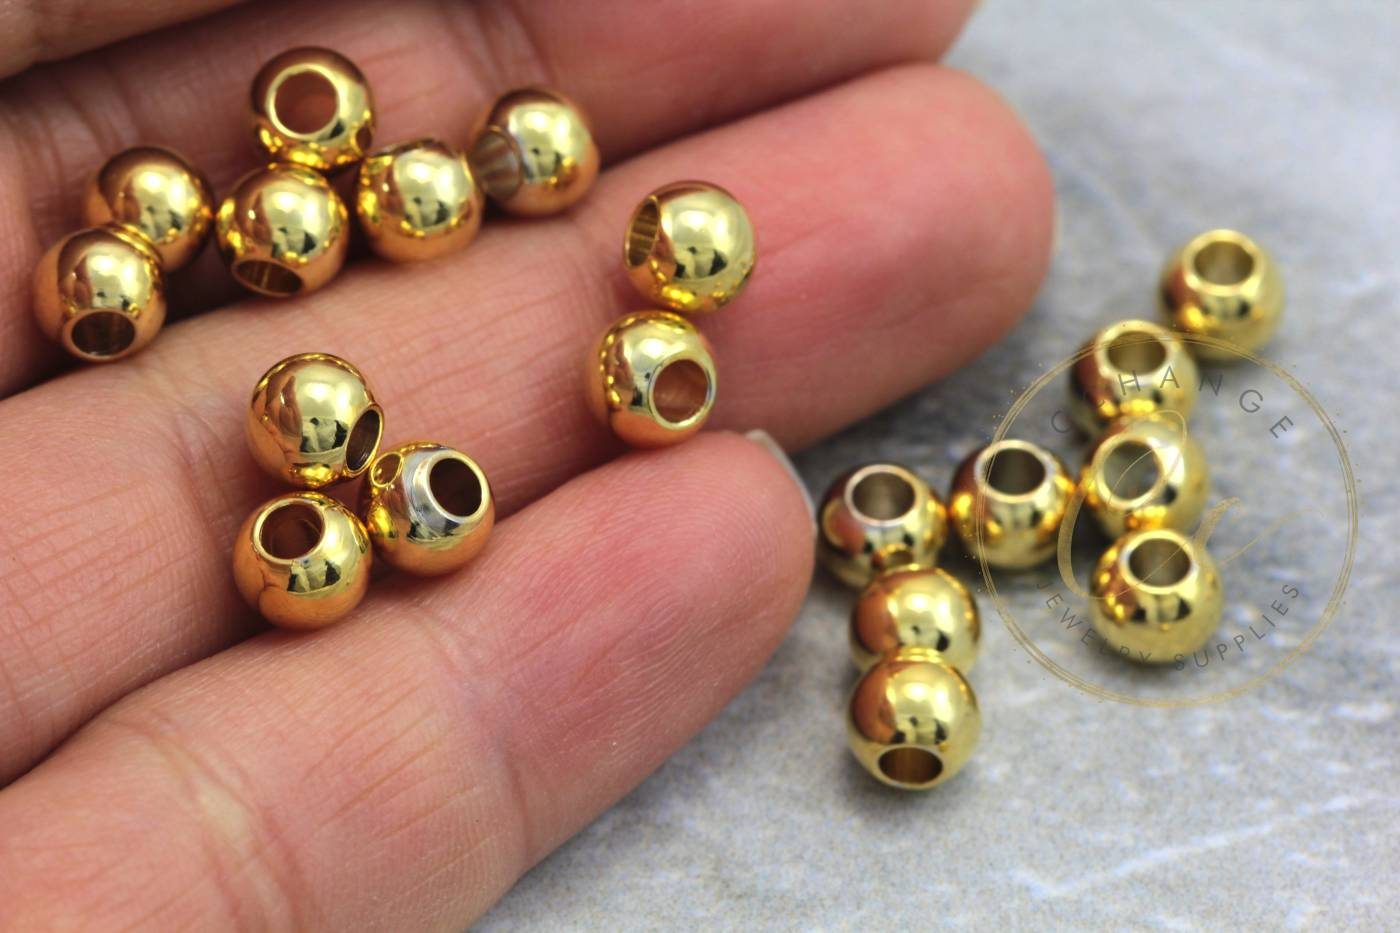 gold-plated-jewelry-loose-spacer-beads.jpg